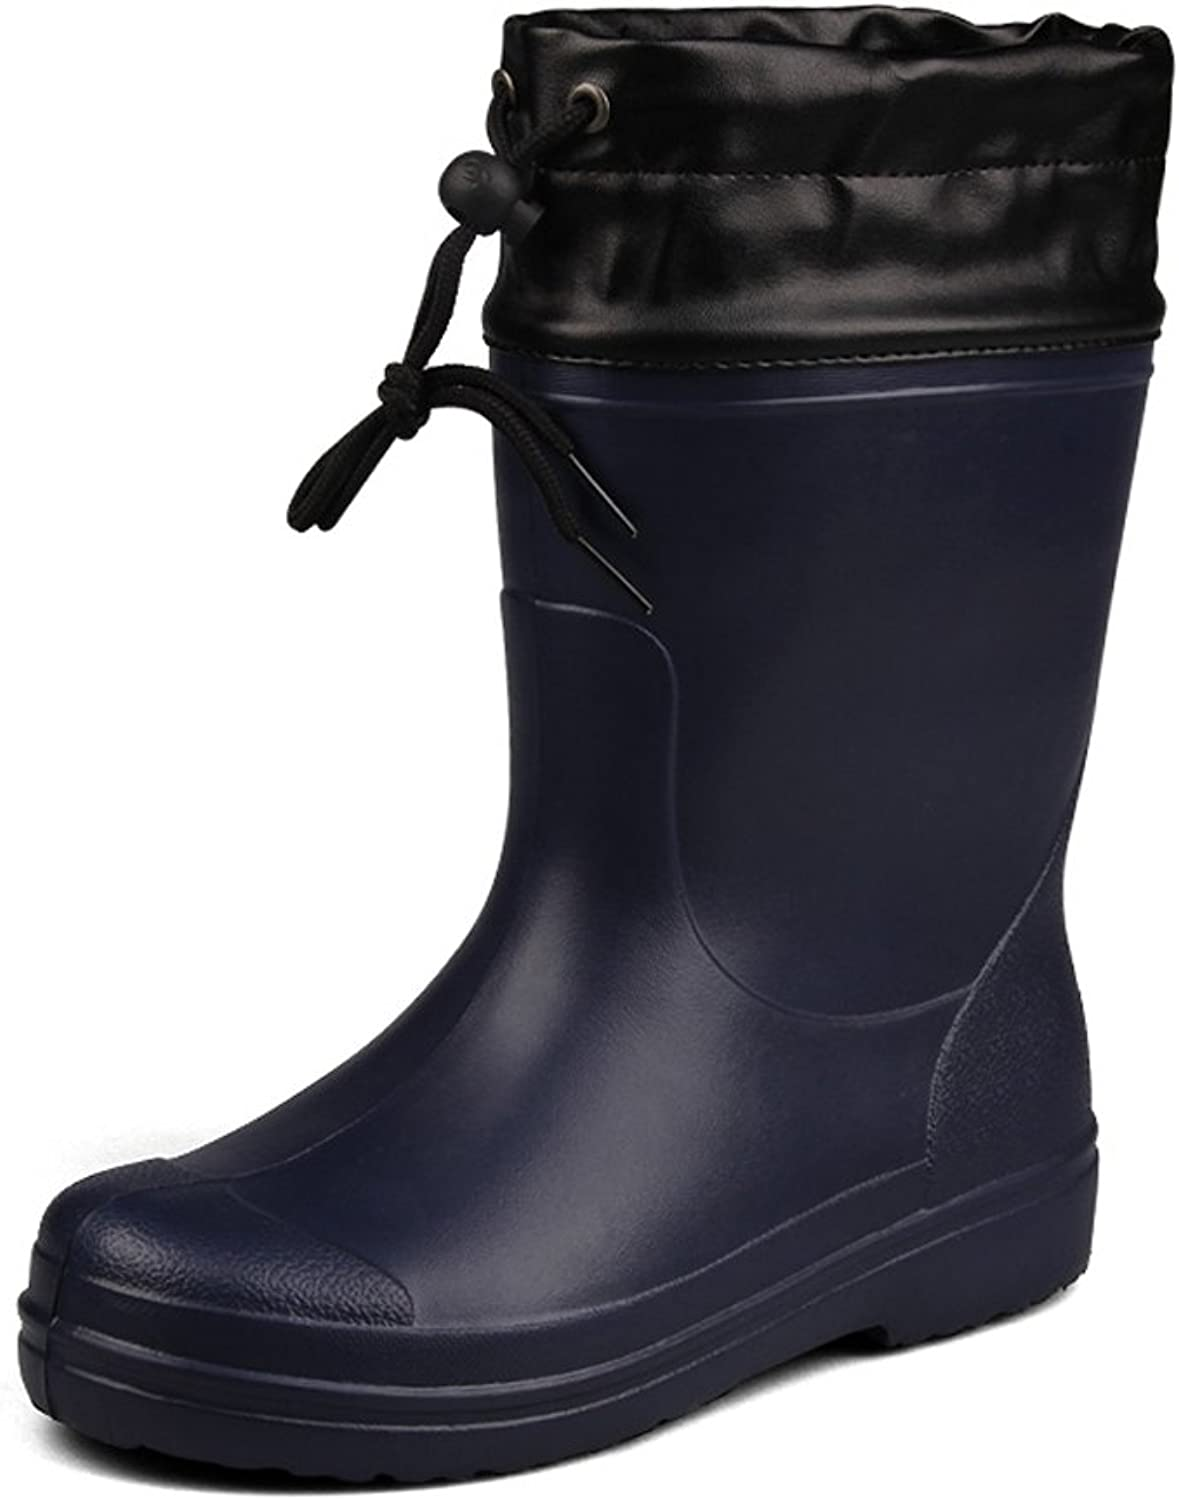 Spring And Summer New Men's Oil-Proof Waterproof Non-Slip Rain Boots In The Tube Wear-Resistant Outdoor Fishing Waterproof Rain Boots